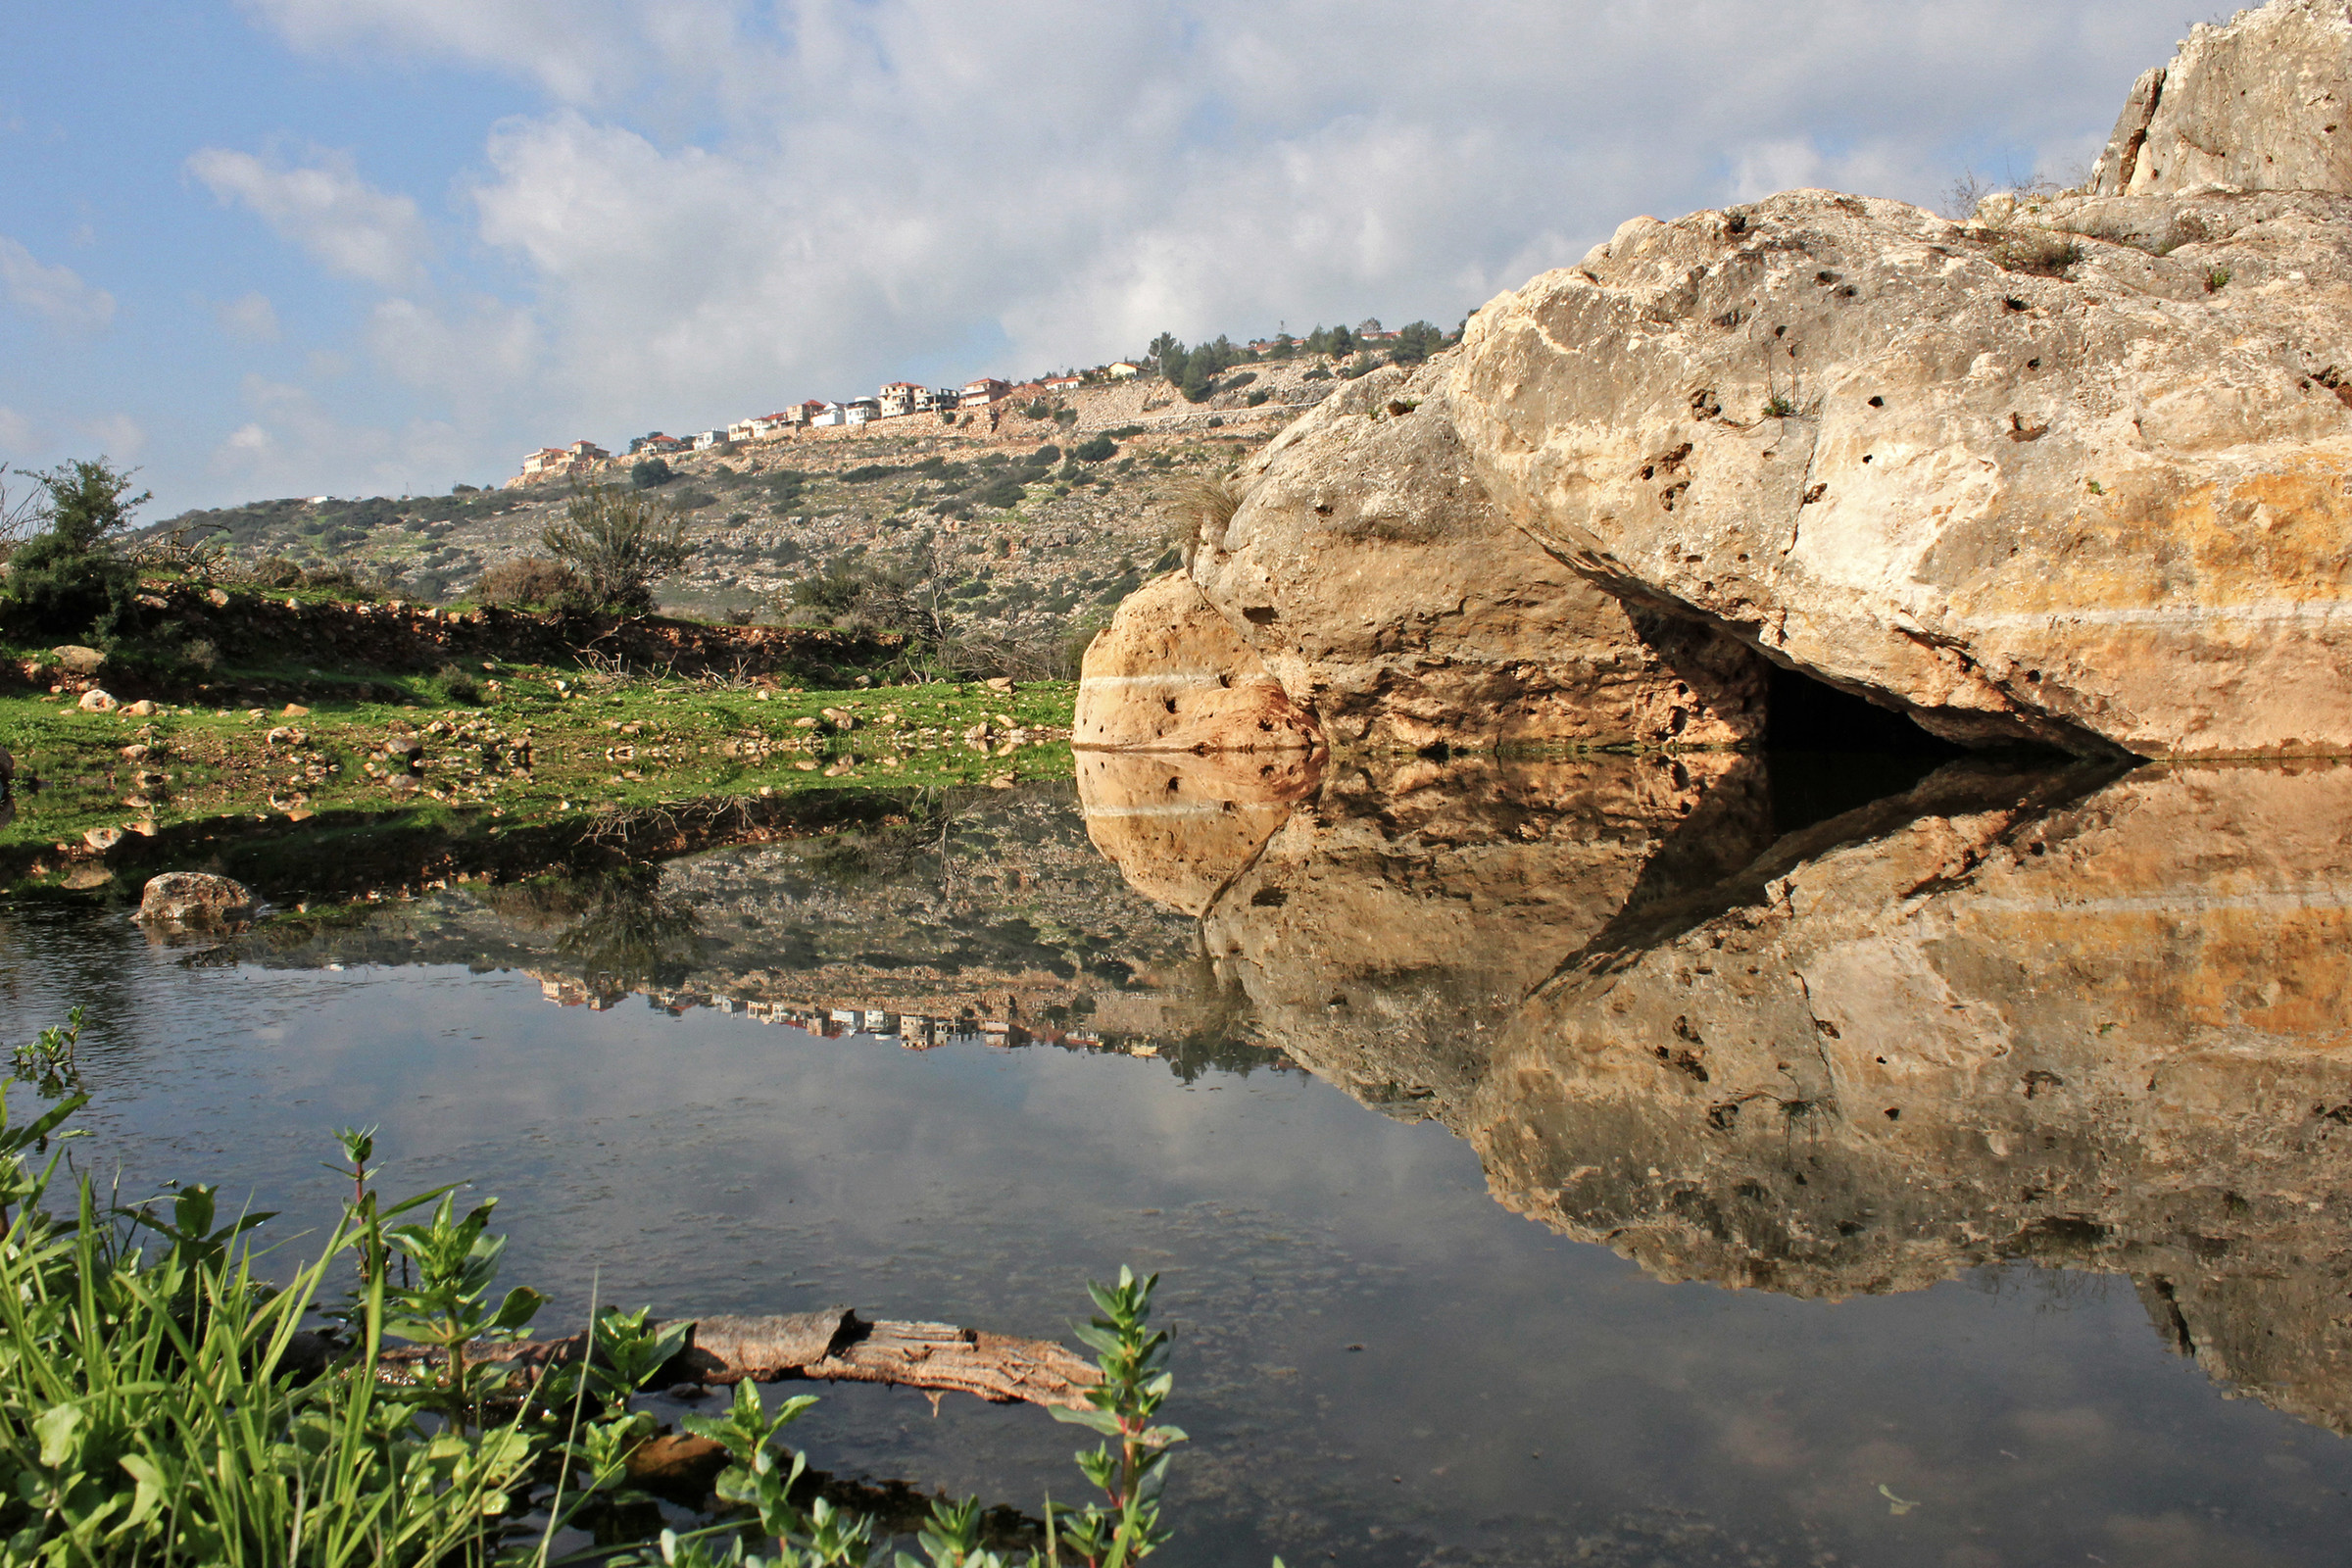 Wadi Qana is considered one of the most beautiful natural areas in the occupied West Bank.